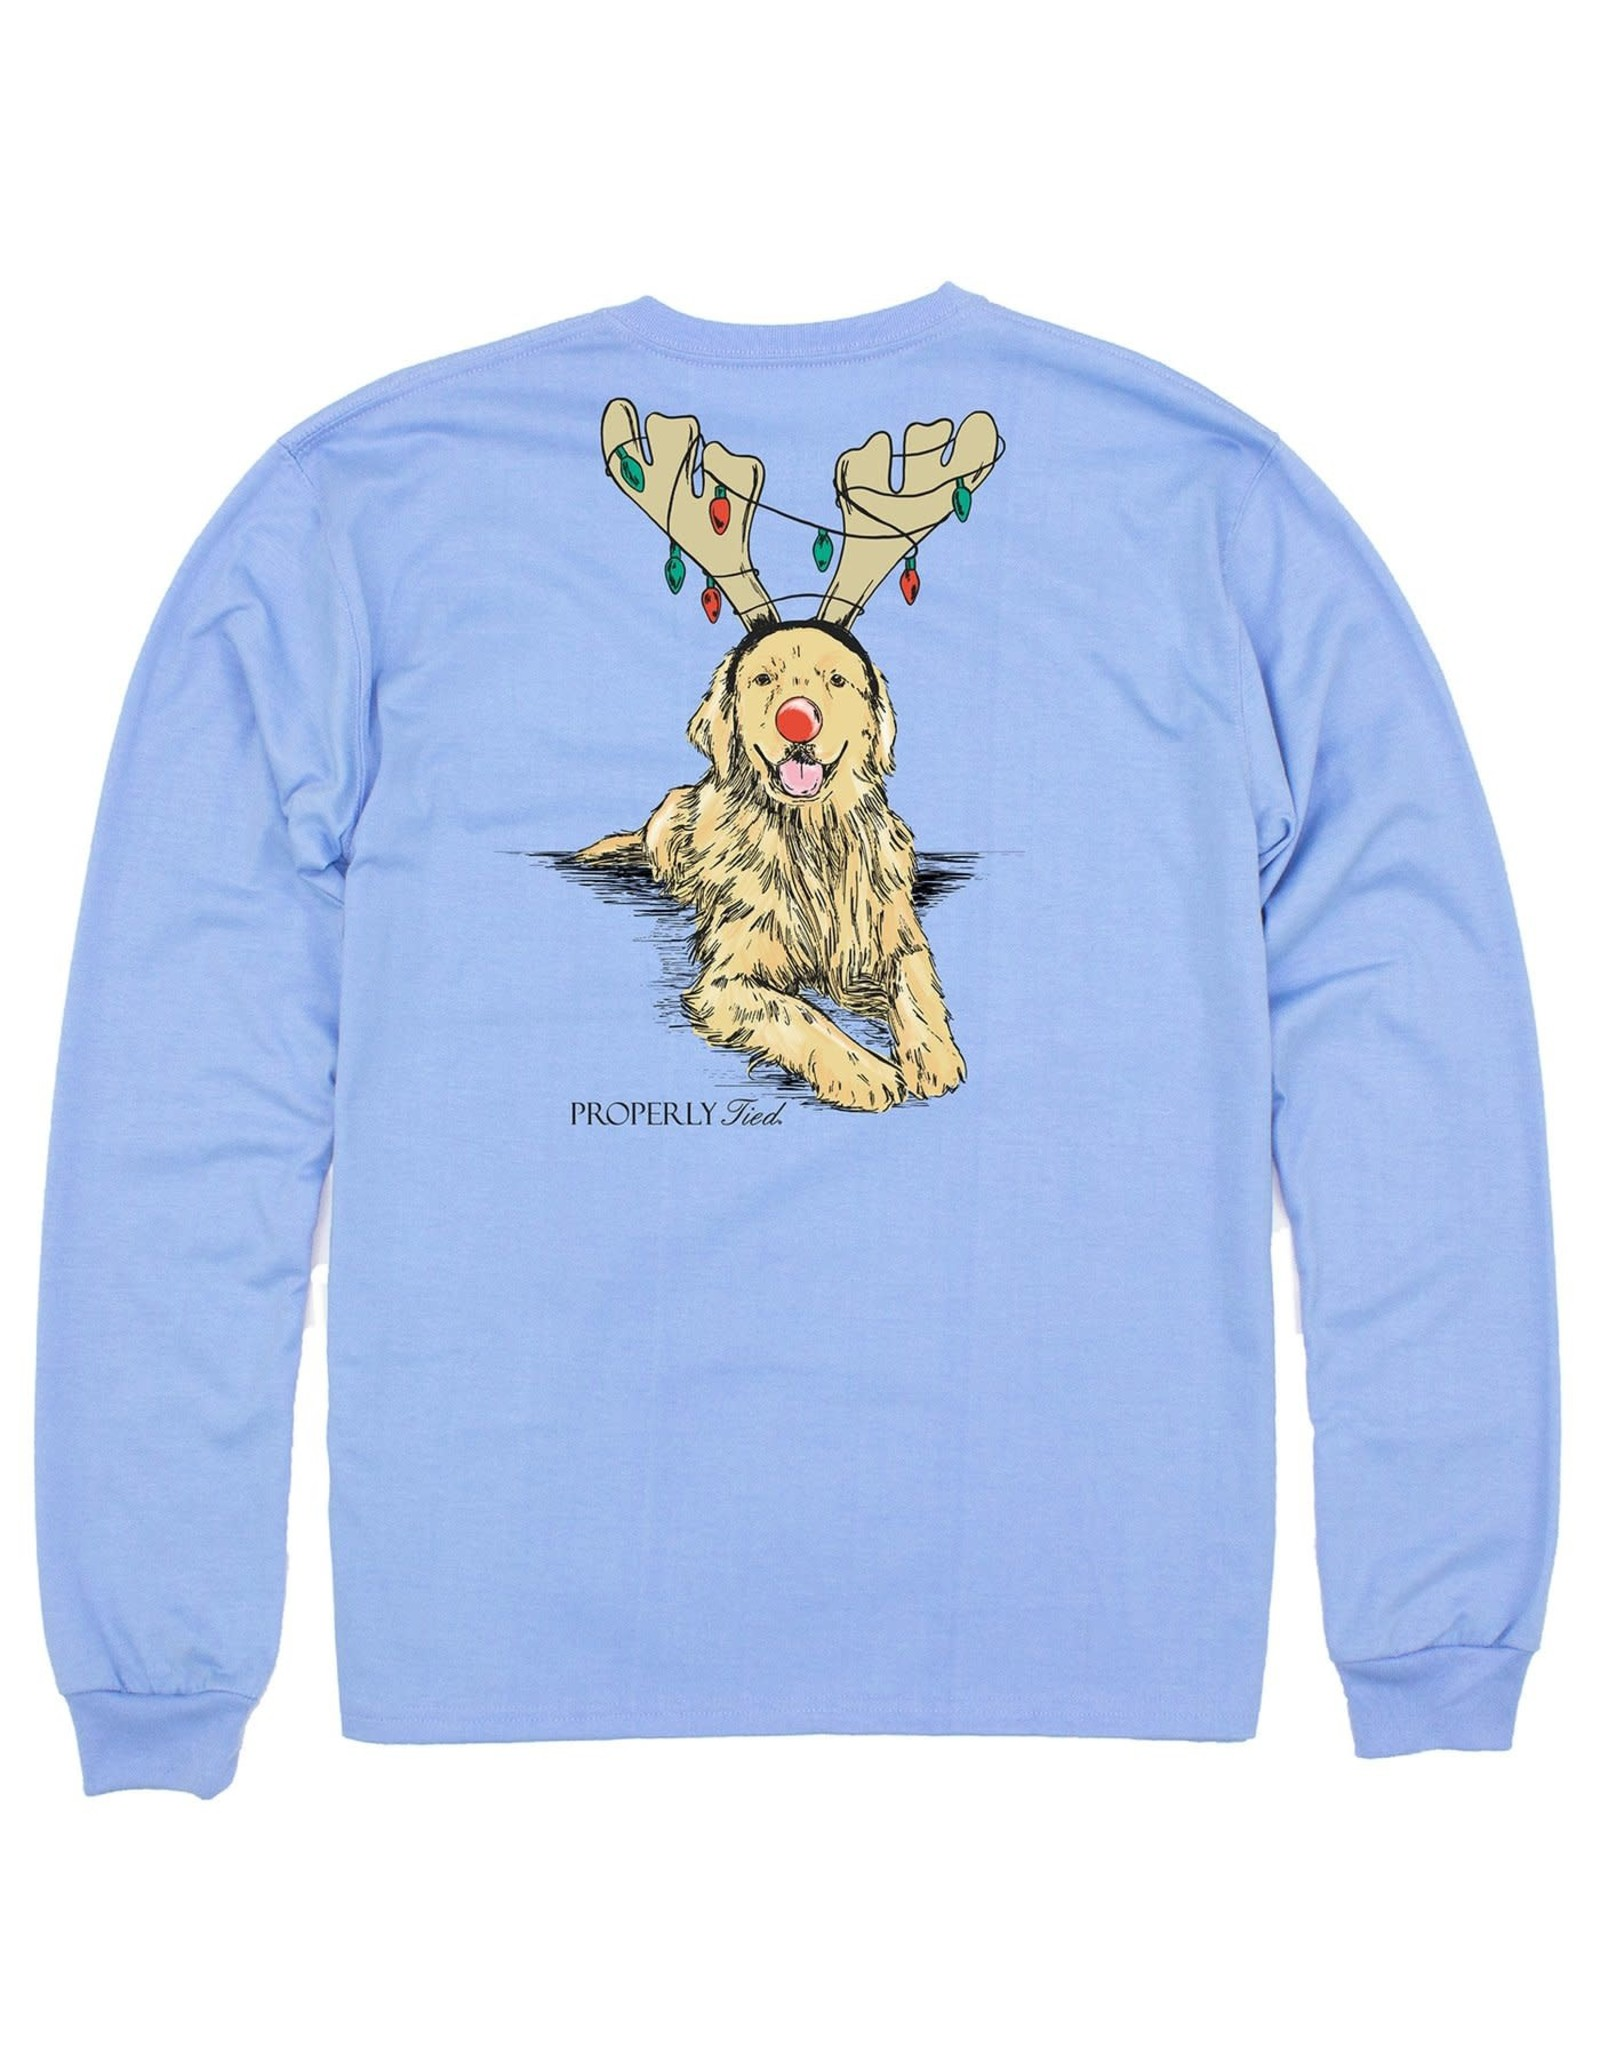 Properly Tied Tee, Golden Holiday